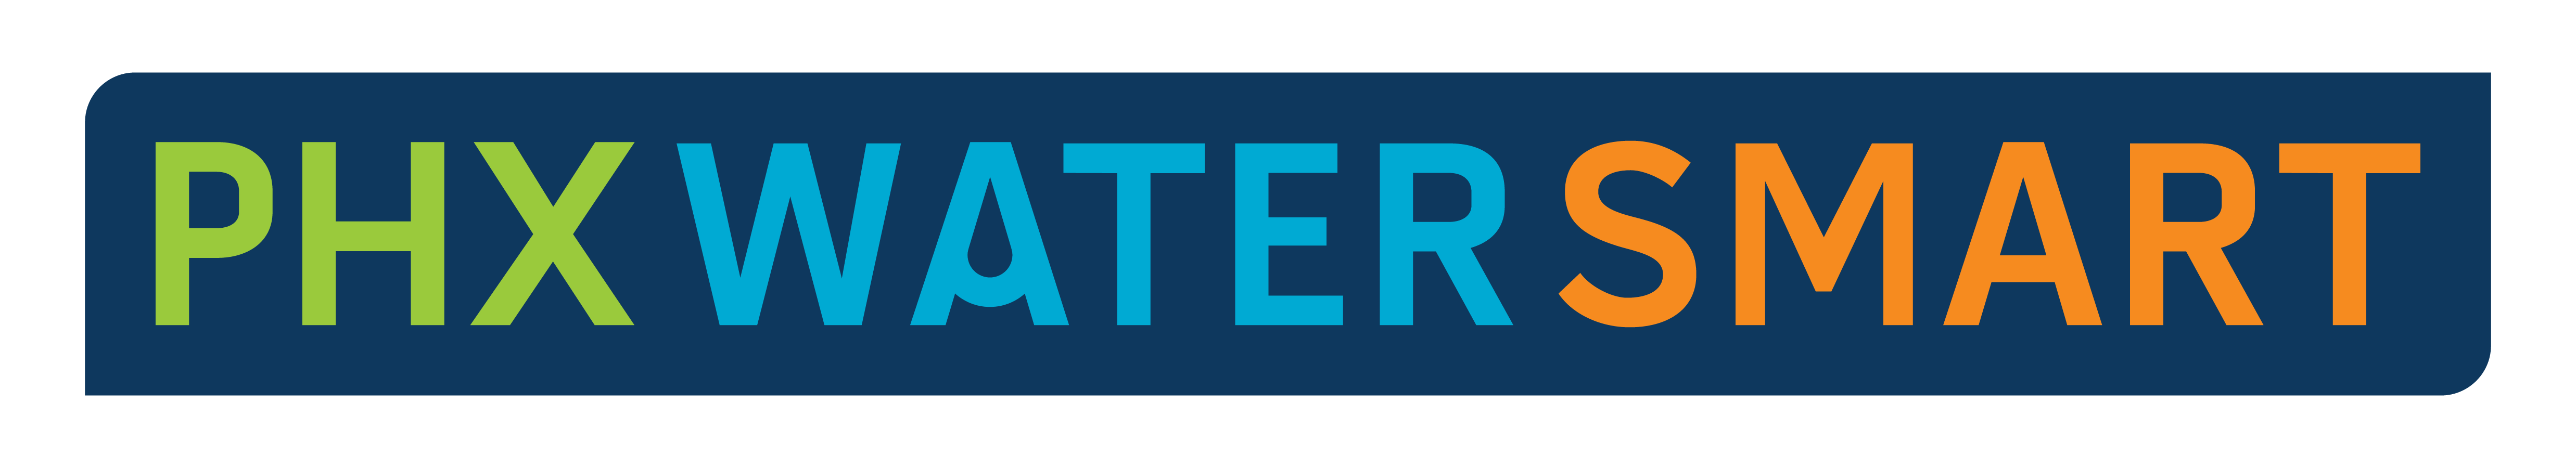 Phx Water Smart Logo